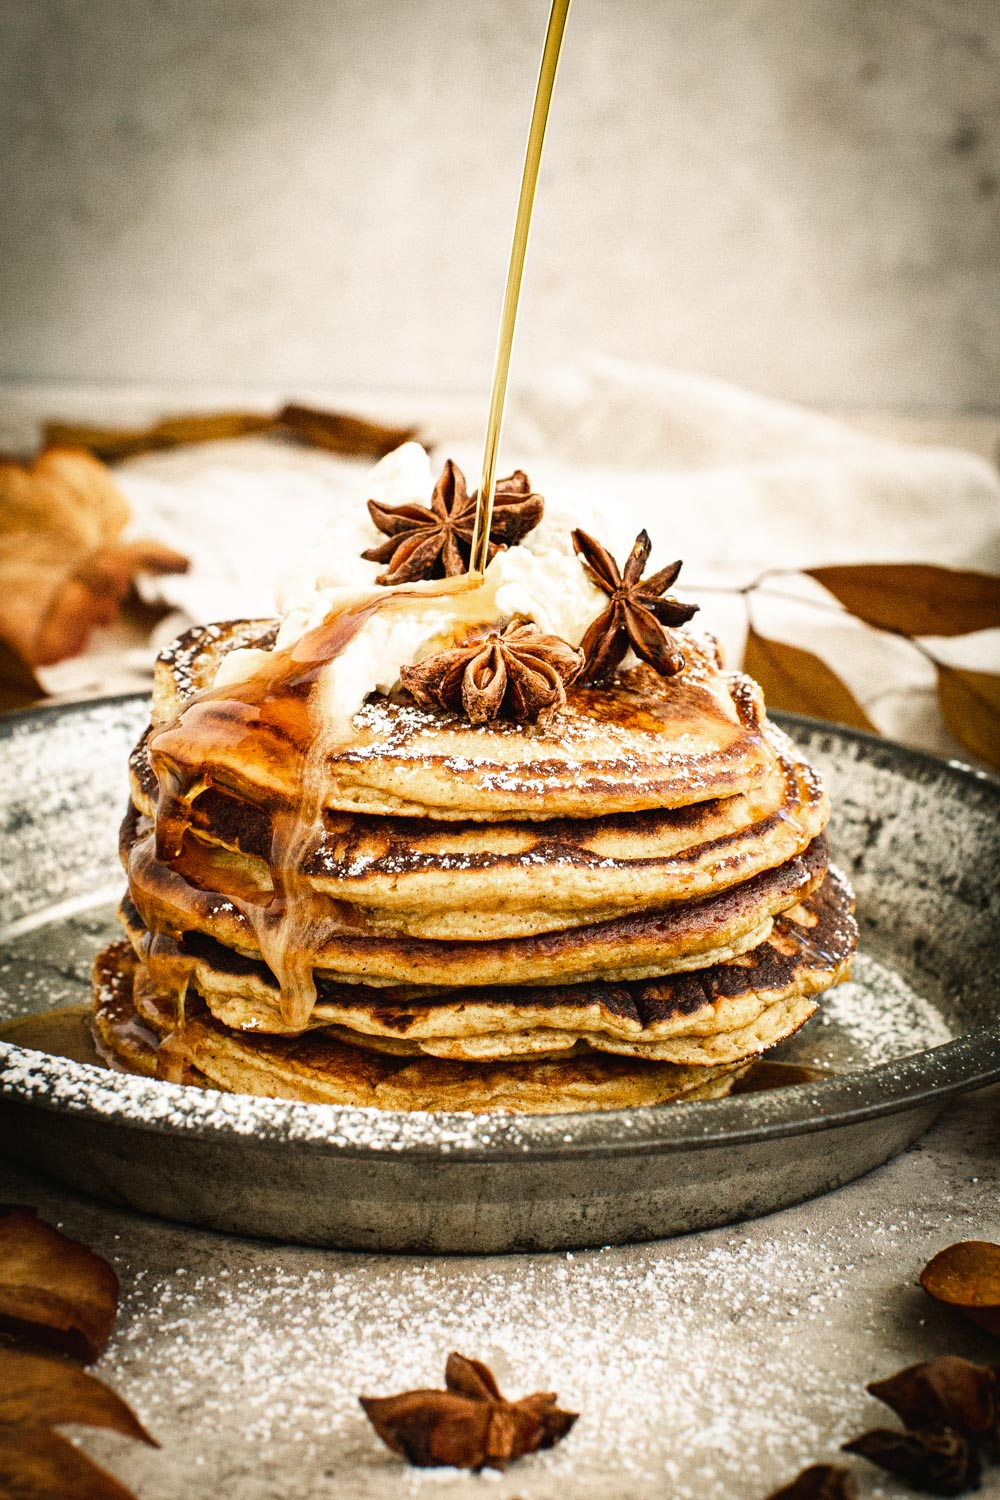 Syrup drizzling on top of pumpkin pancakes topped with whipped cream, powdered sugar, and star anise.